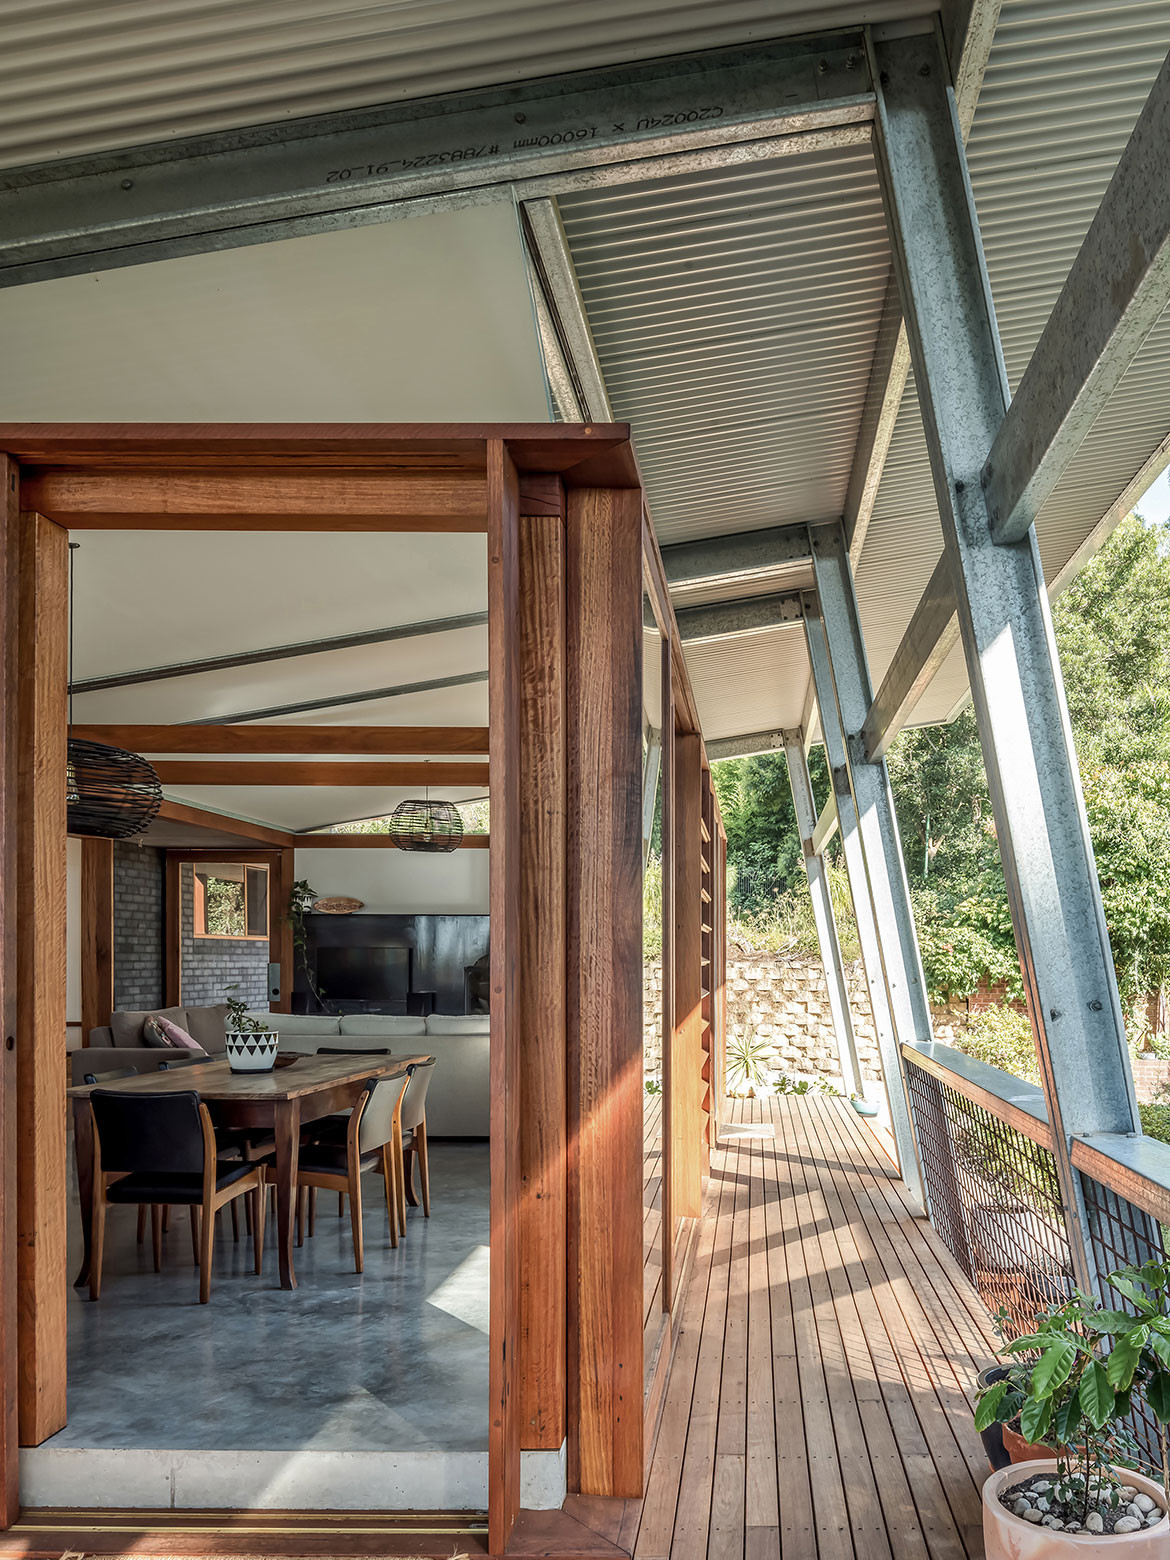 Studio Takt added a north facing living pavilion to a dark, cramped 1950s brick bungalow in Illawarra, NSW, toopenExoskeleton House up to the northerly aspect and connect it to its landscape.